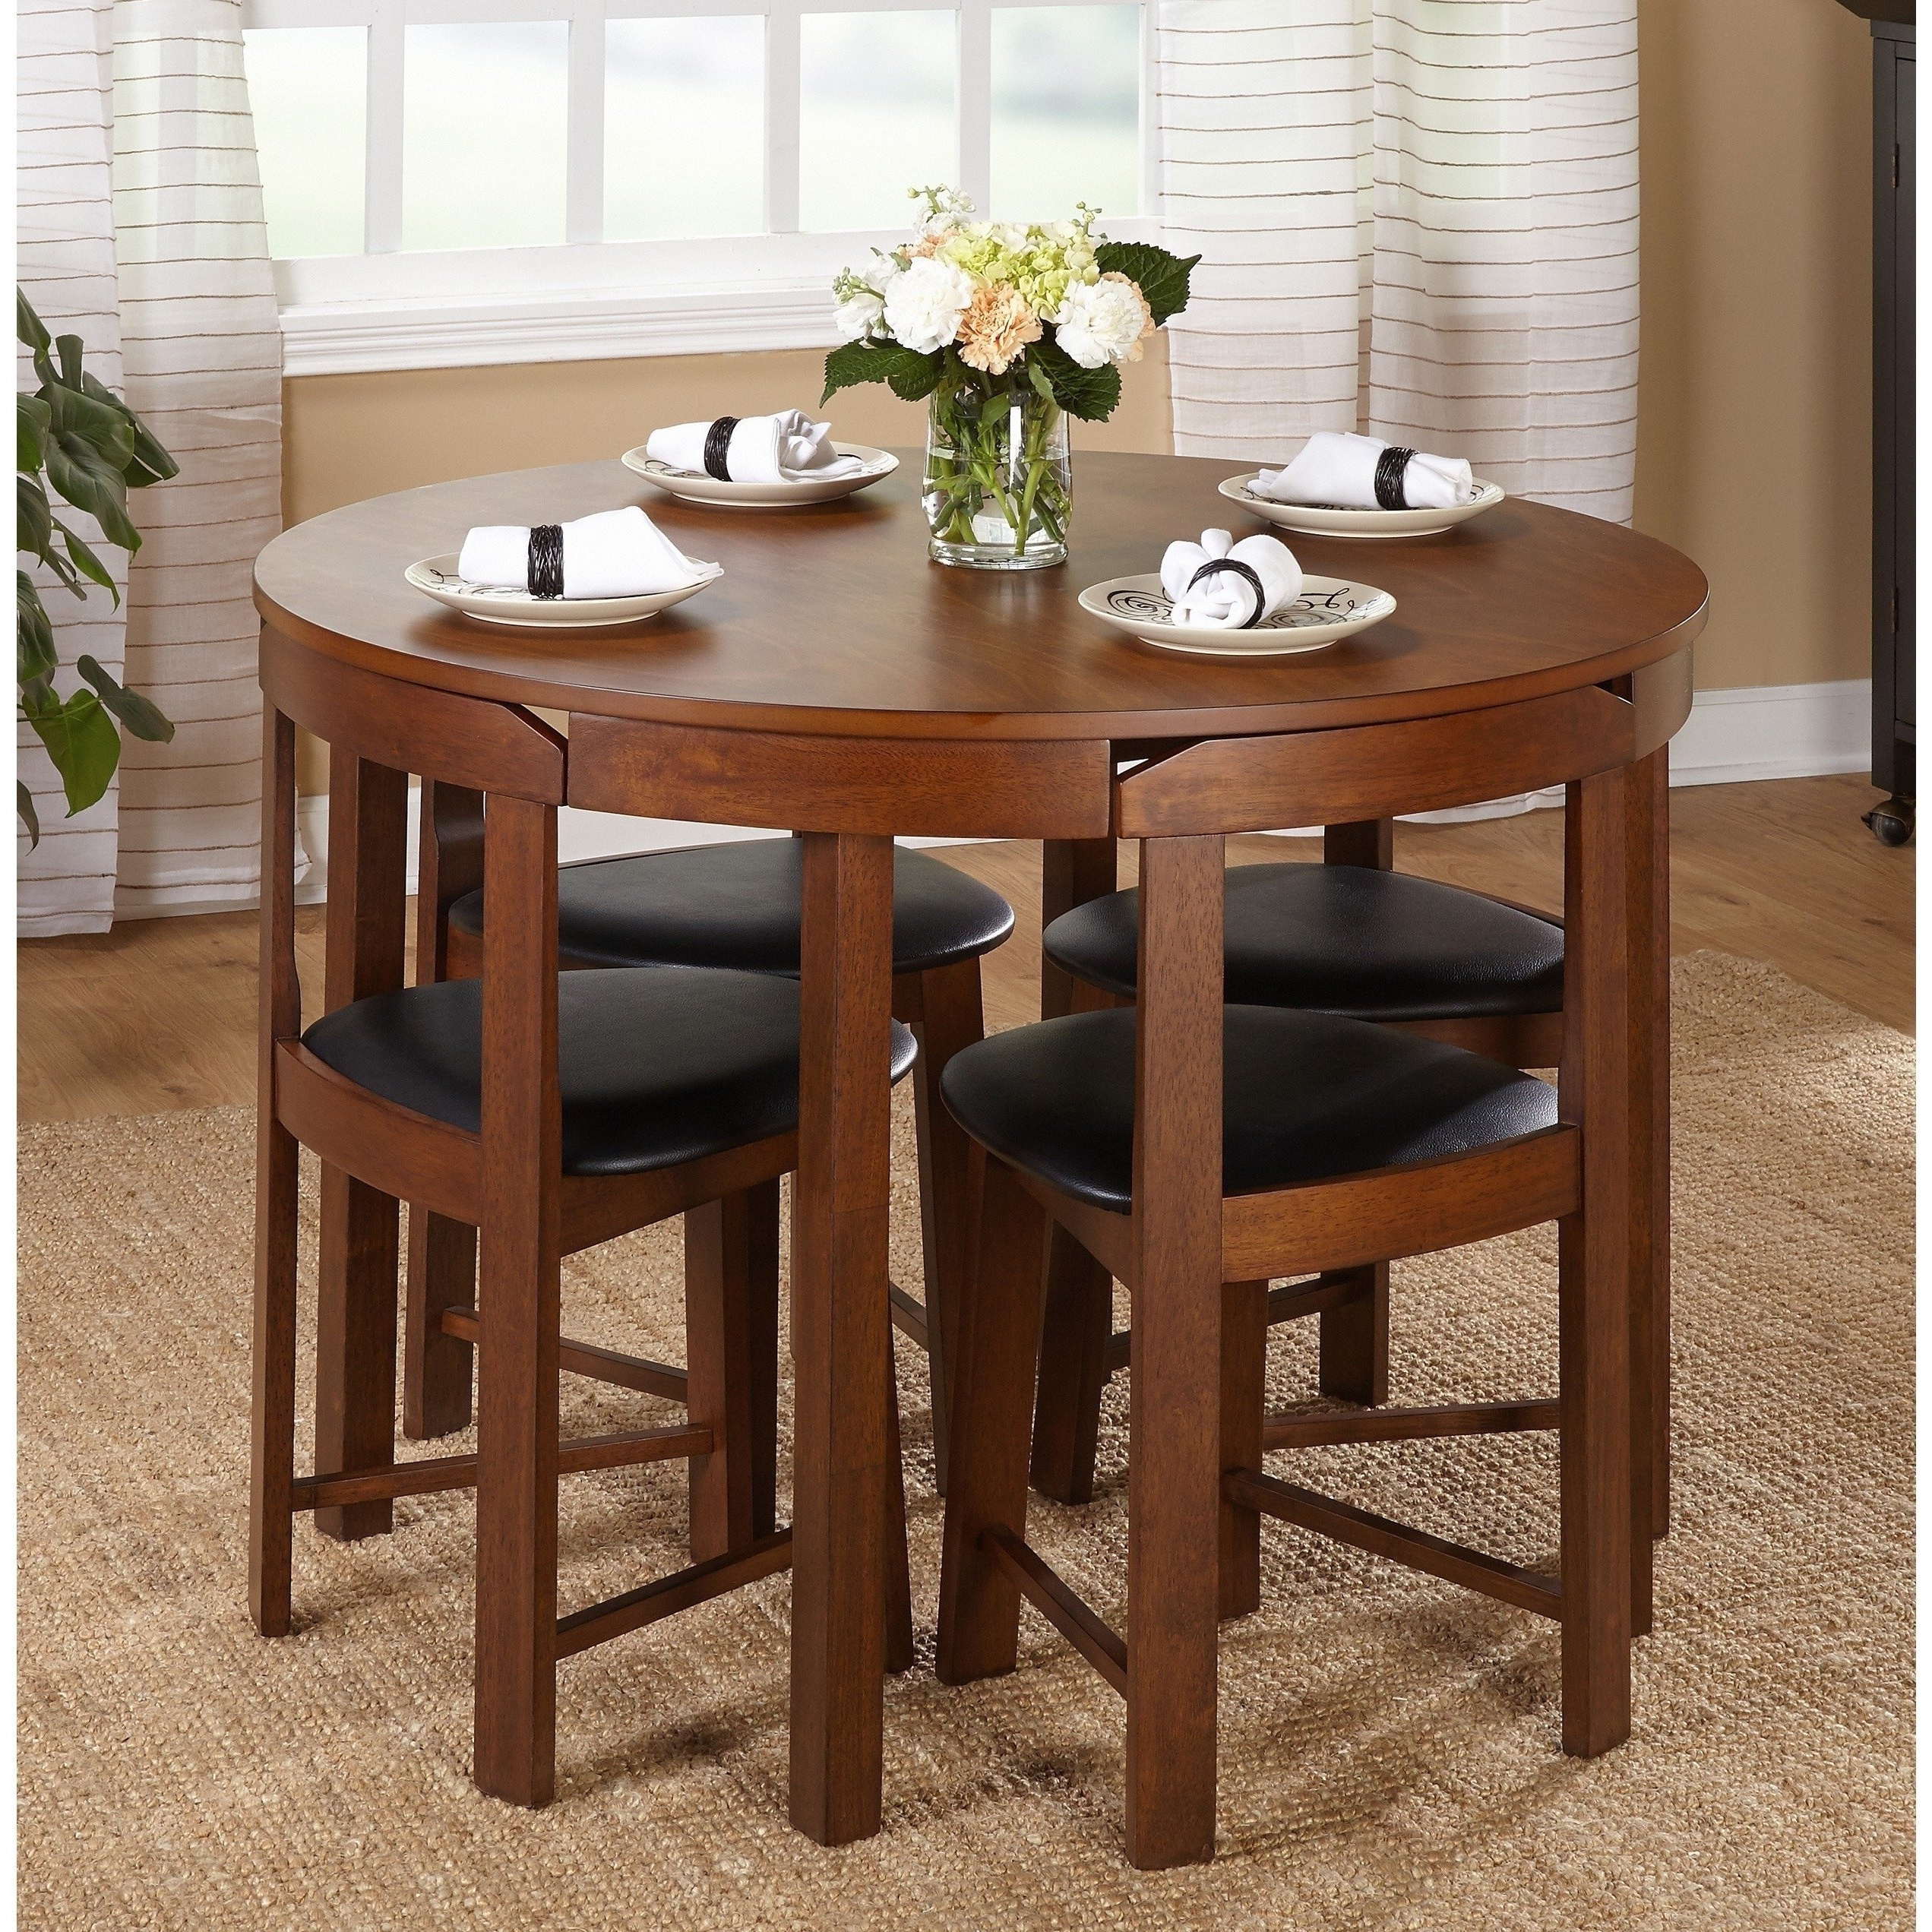 Shop Our Best Home Goods Deals Online At Overstock In Caira Black 5 Piece Round Dining Sets With Diamond Back Side Chairs (View 22 of 25)